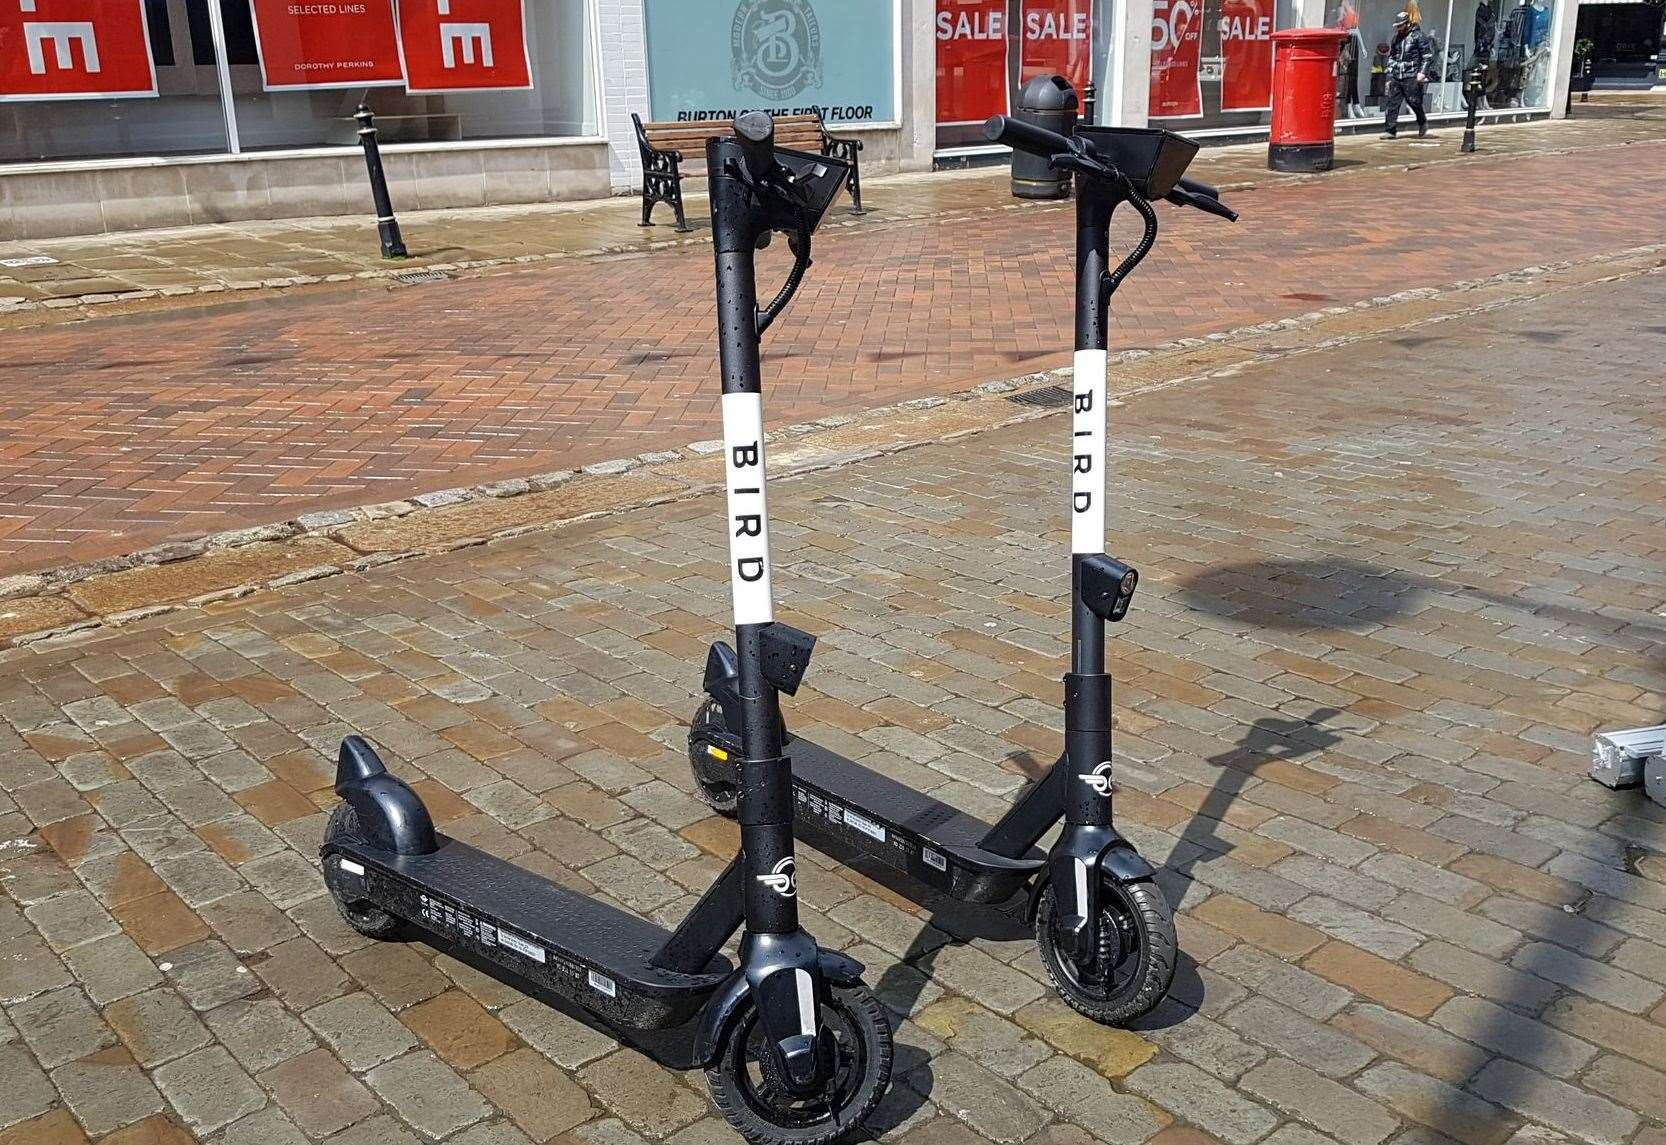 Electric scooters are available for hire in Canterbury as part of a government-backed trial